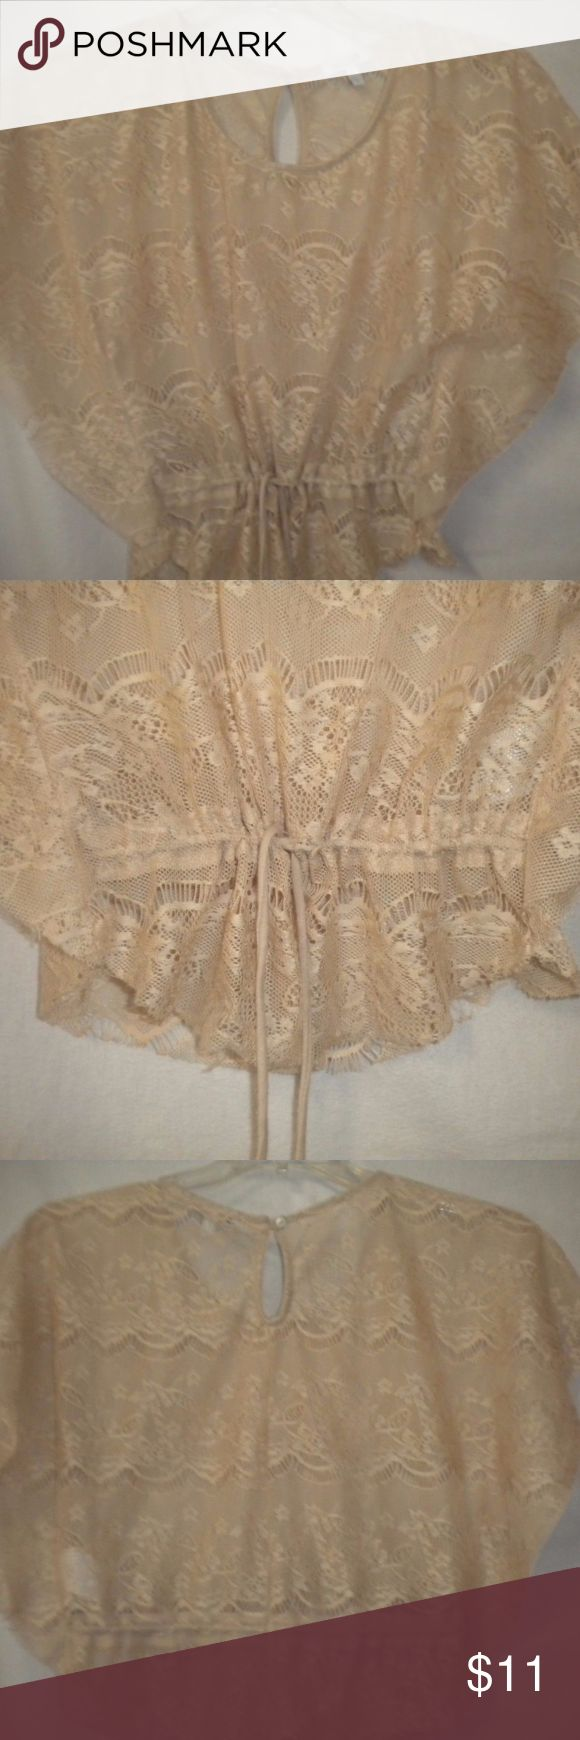 "Delia's Small Beige Lace Dolman Bat Wing Shirt Too Barely Worn. Delia's Junior Size Small Top. Layering. Batwing. Dolman.  Sheer.  Beige.  Lace.  Drawstring.  Made of 100% Polyester. Chest approx 36"". Length approx 22"". Delia's Tops"